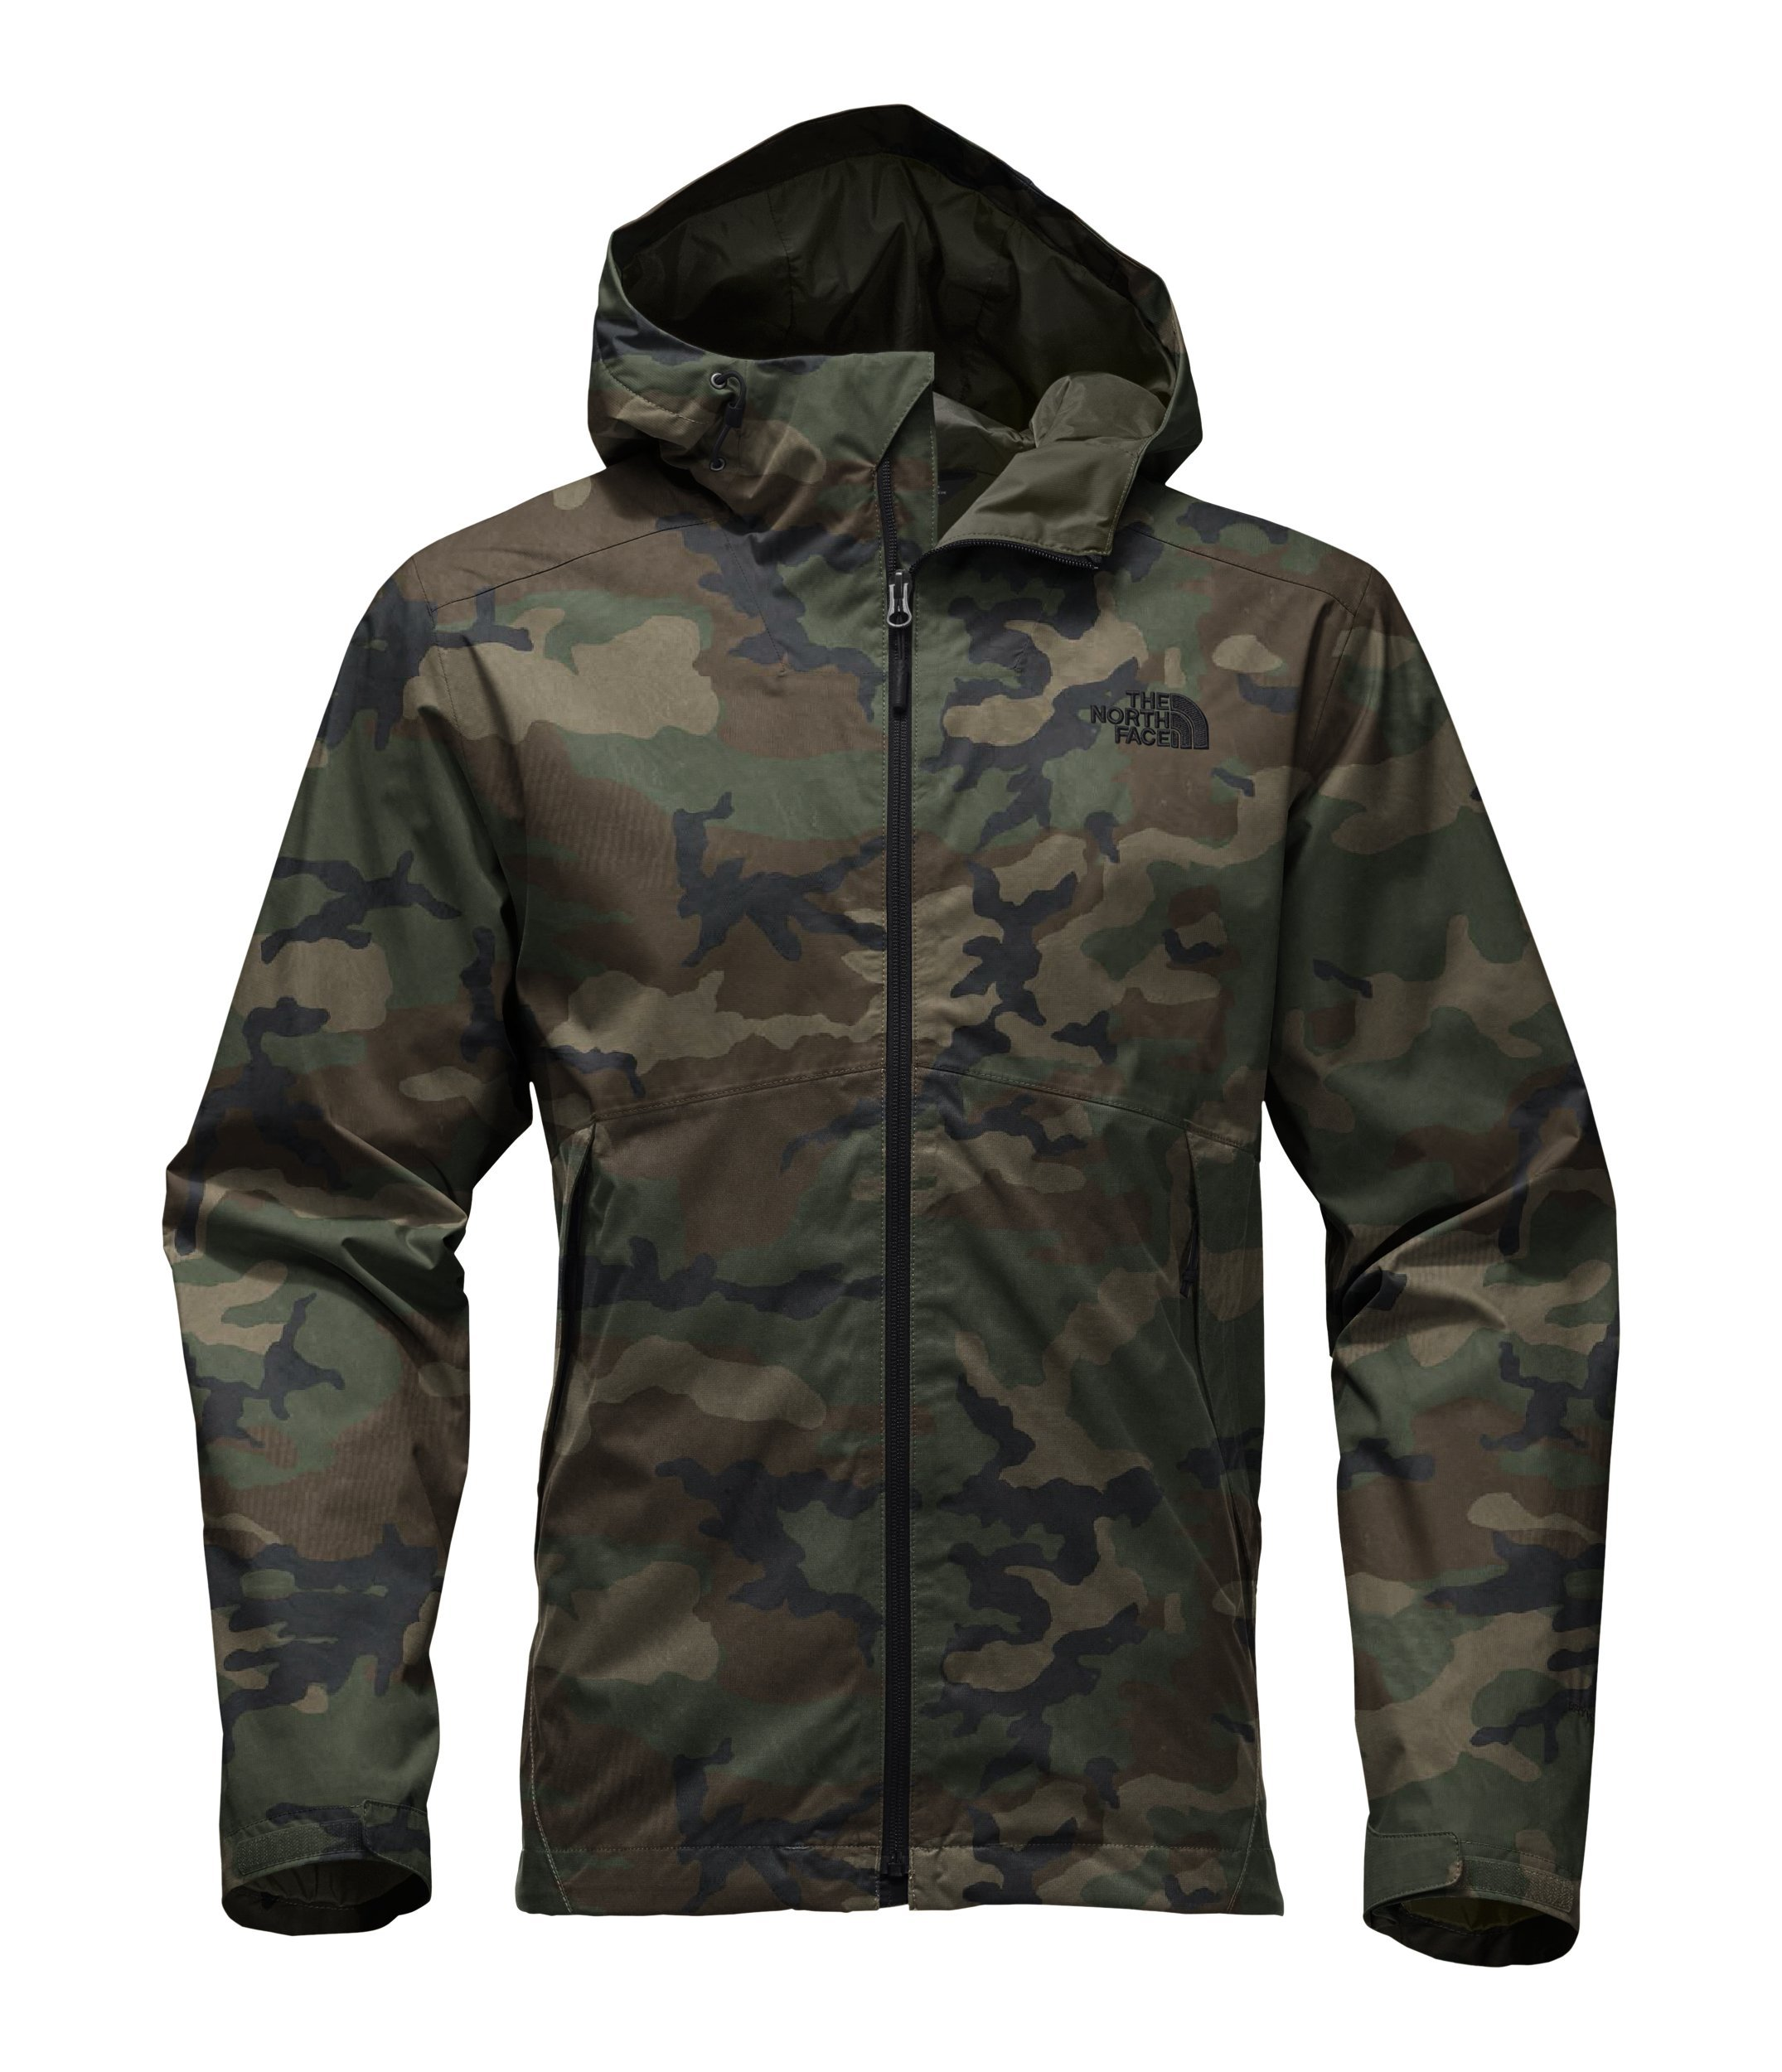 The North Face Men's Millerton Jacket - Terrarium Green Woodland Camo Print - M by The North Face